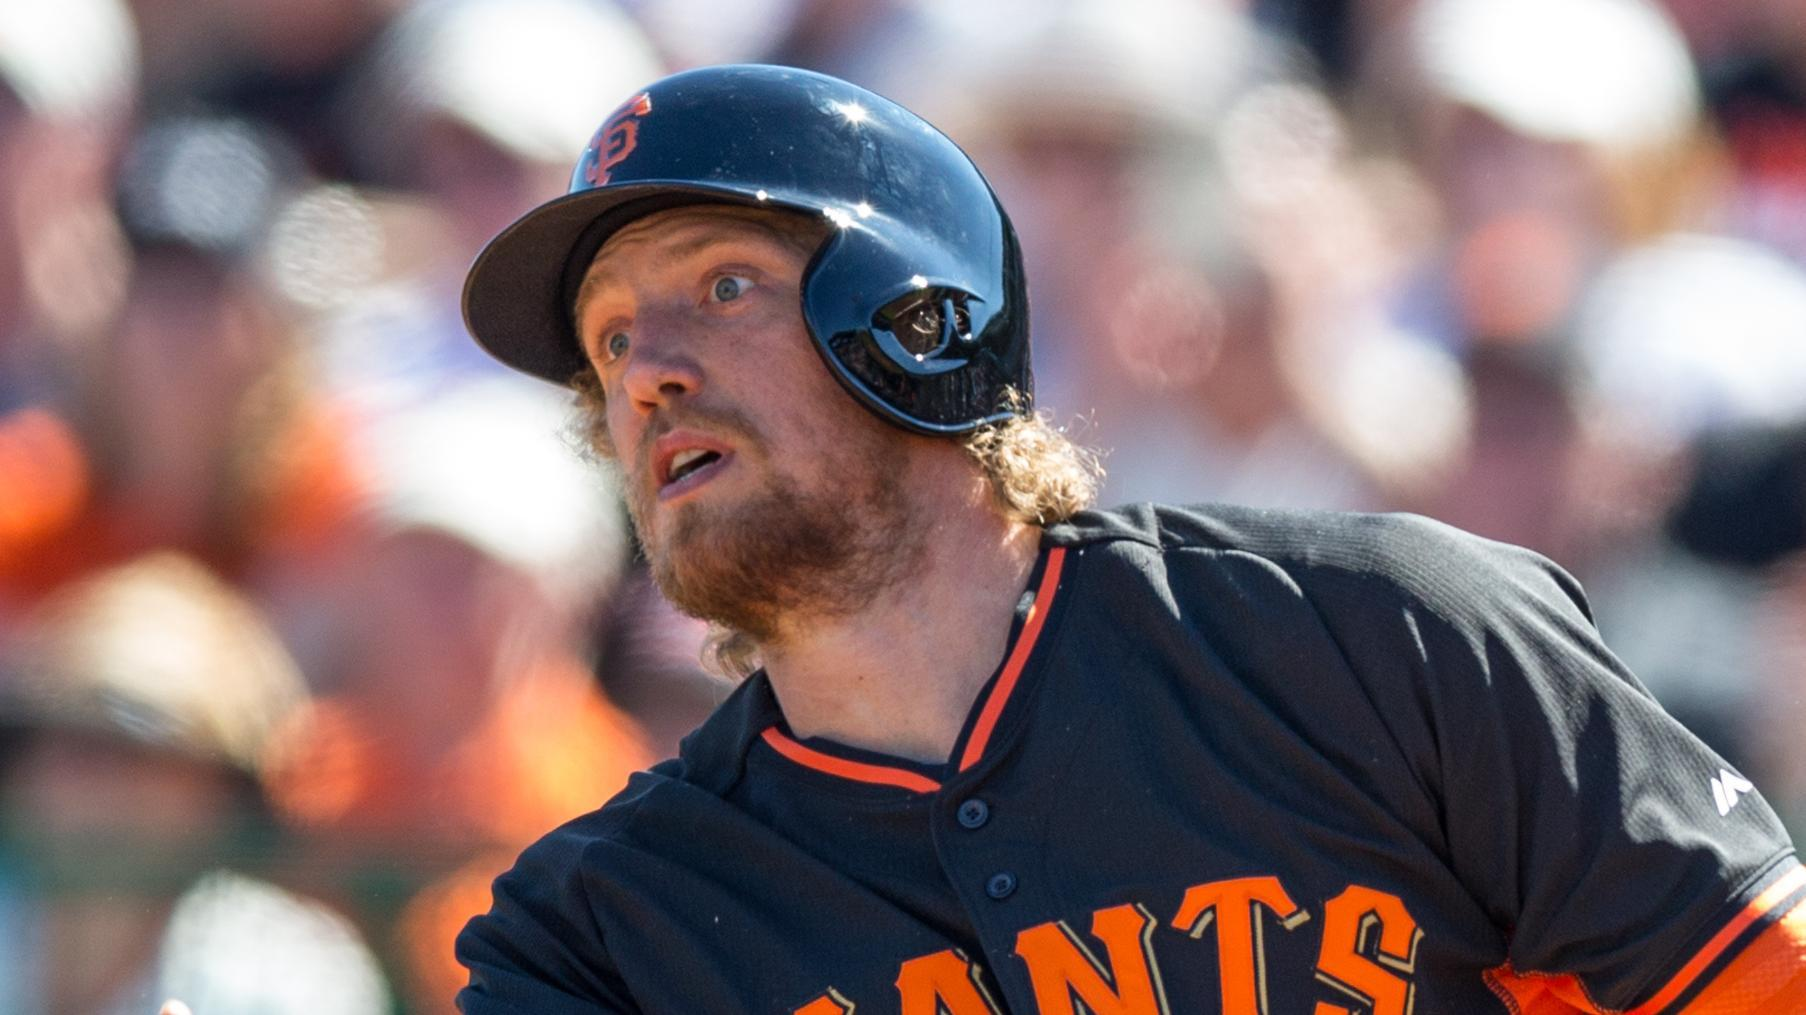 http://a.espncdn.com/media/motion/2015/0306/dm_150305_mlb_hunterpence39/dm_150305_mlb_hunterpence39.jpg